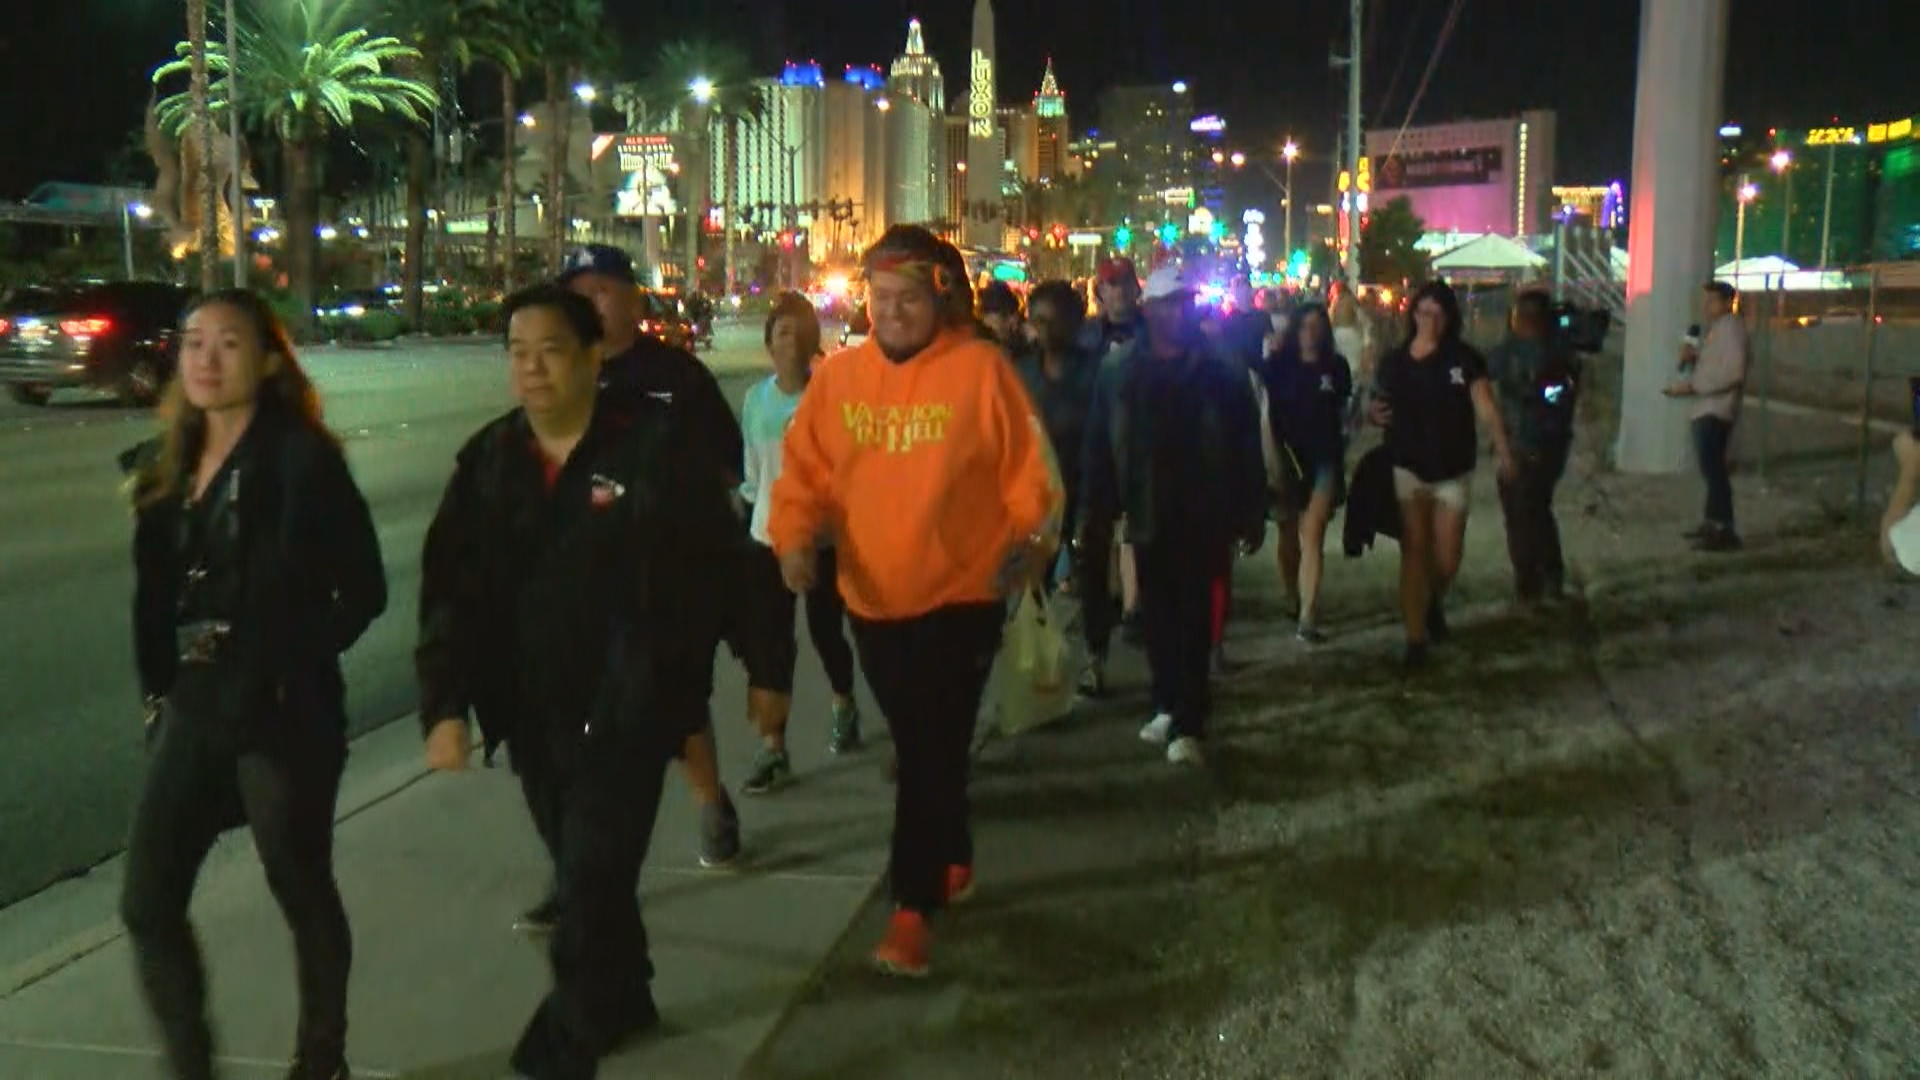 Marchers walk down the Las Vegas Strip on Sunday, October 15, 2017, in honor of the victims of the 1 October shootings. (Robert Varela/KSNV)